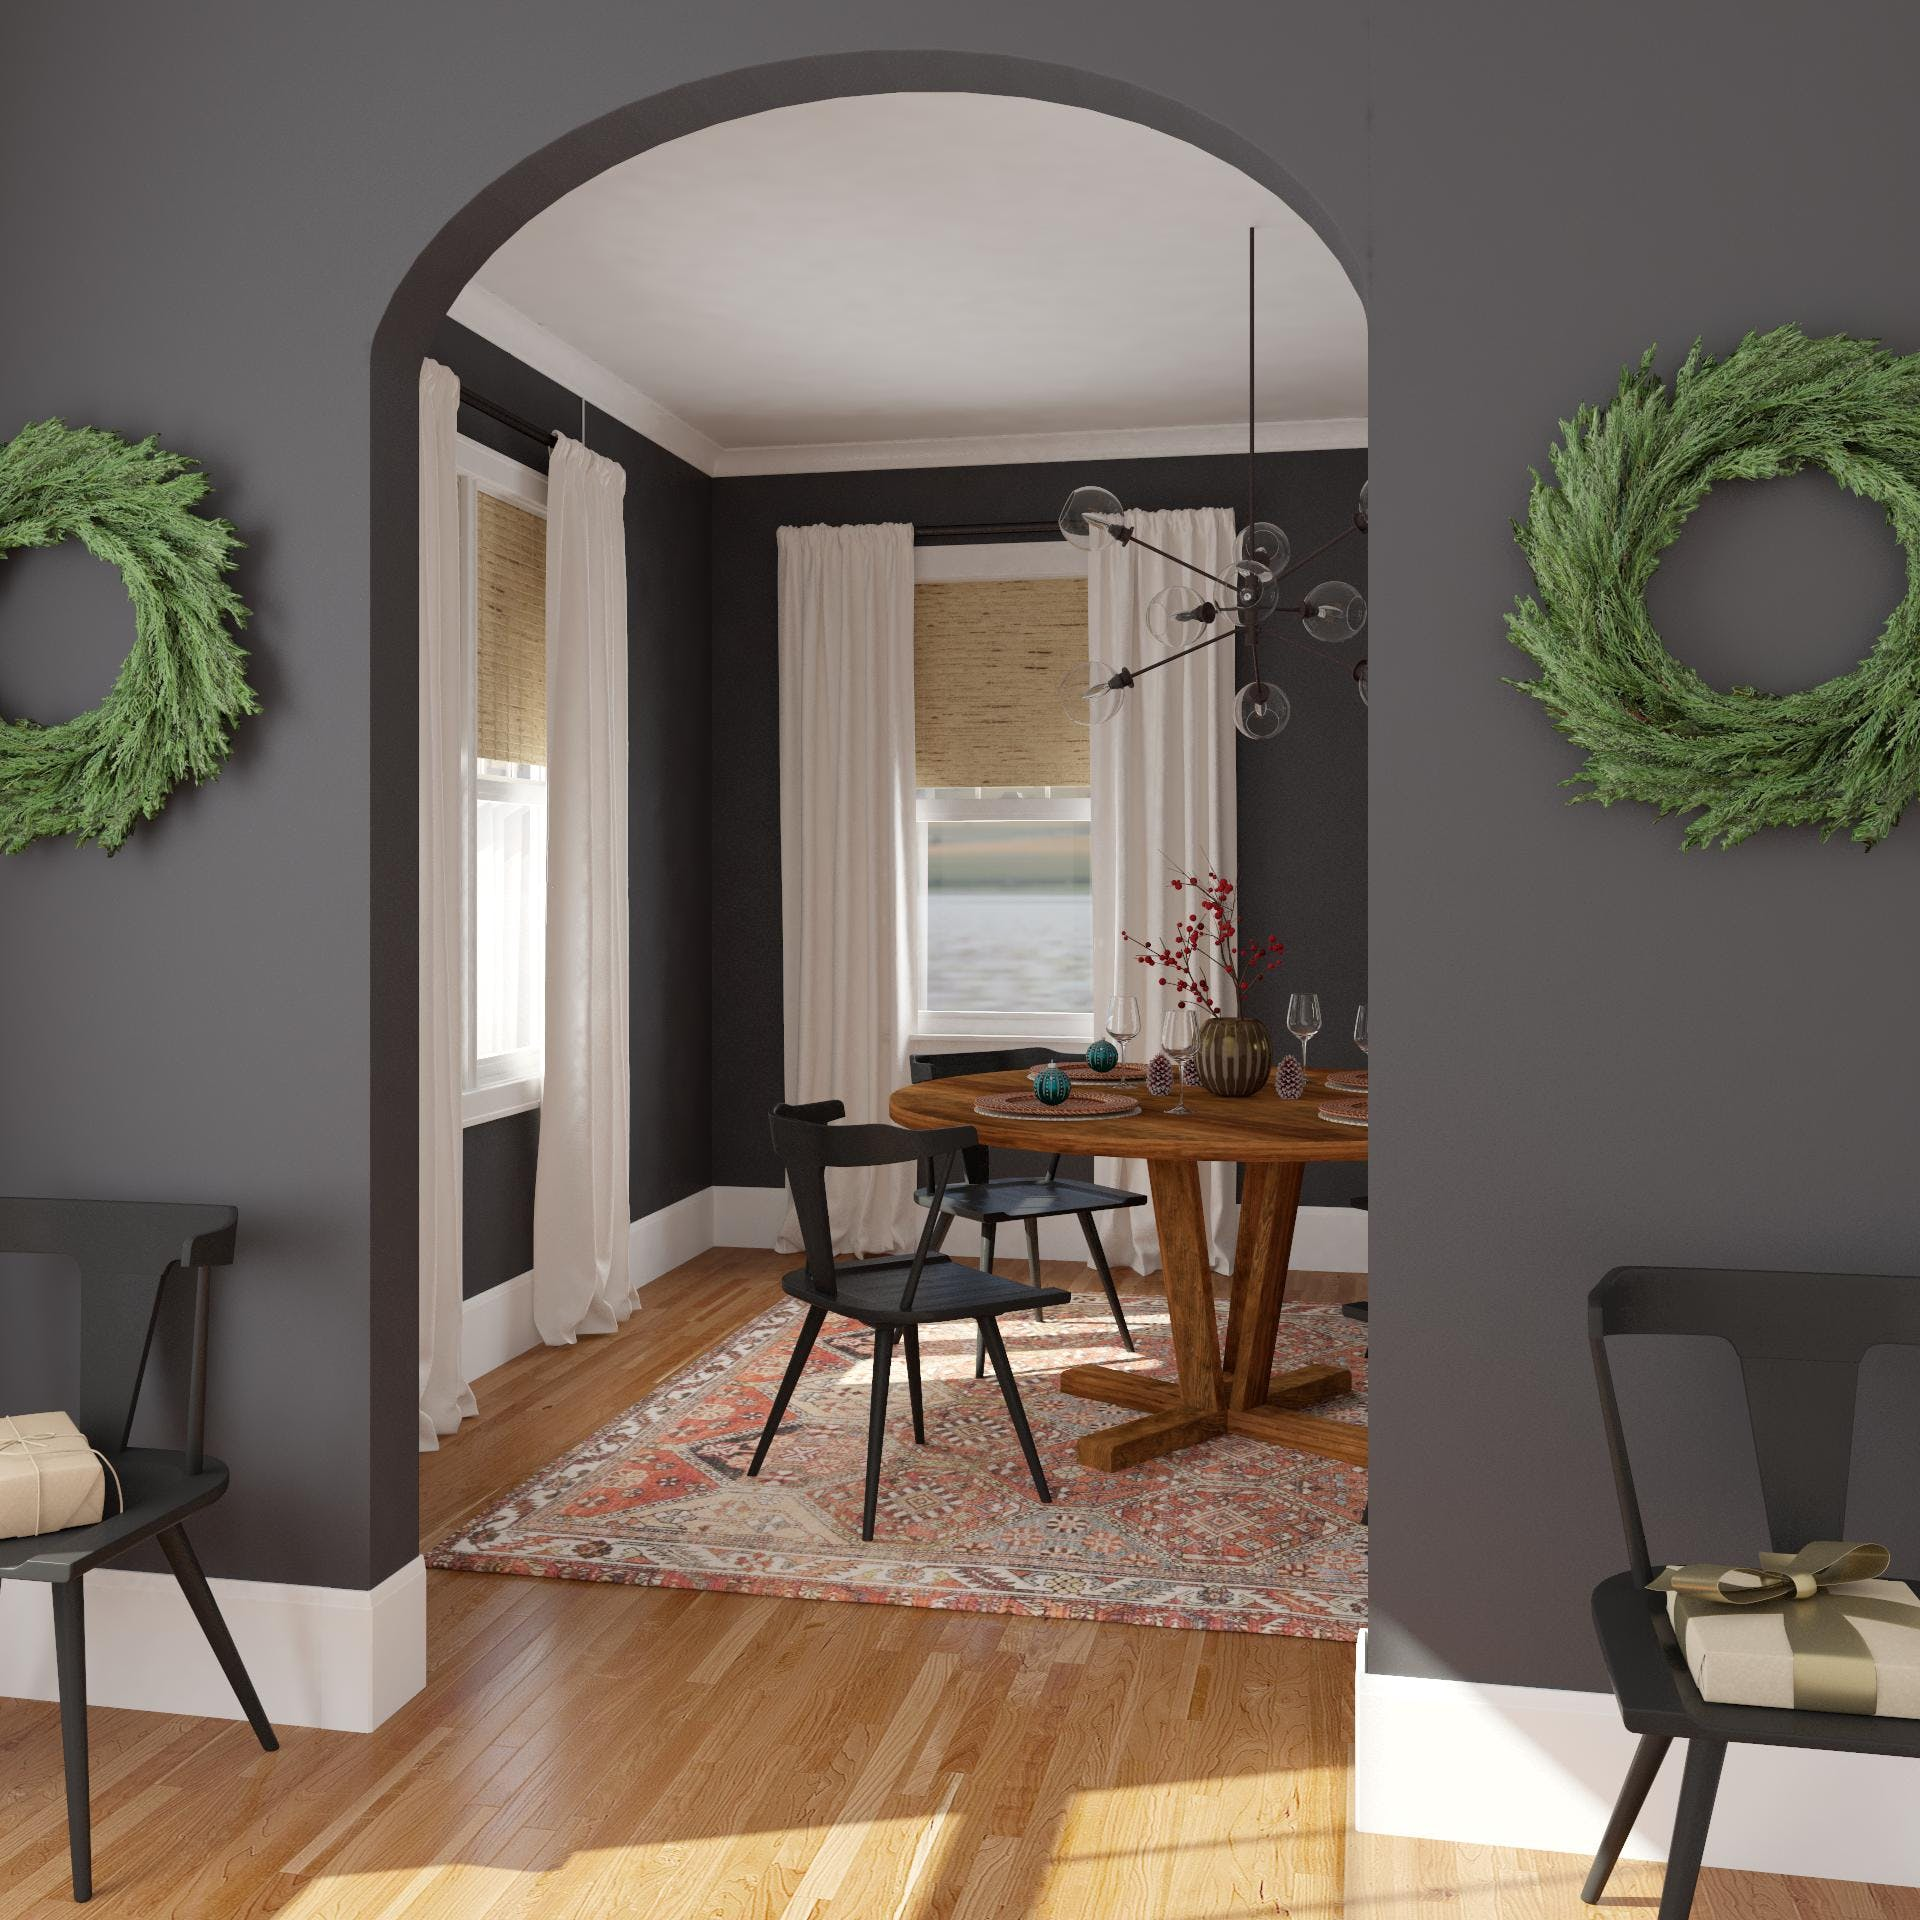 A Modern Rustic Holiday Dining Room